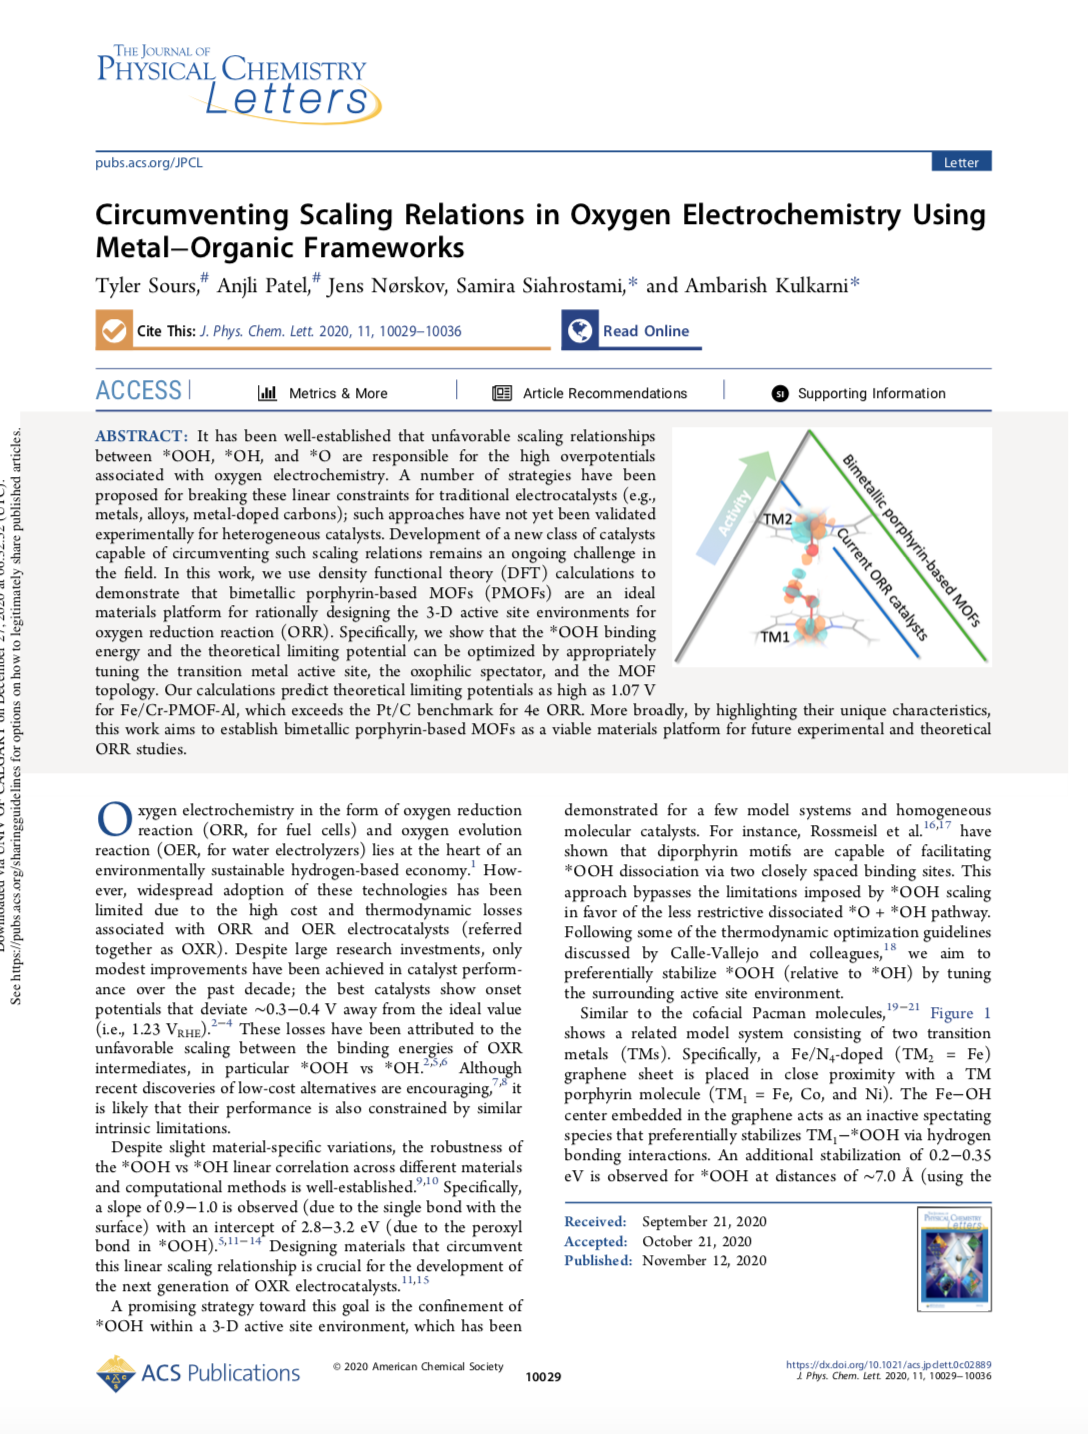 Circumventing Scaling Relations in Oxygen Electrochemistry Using Metal−Organic Frameworks